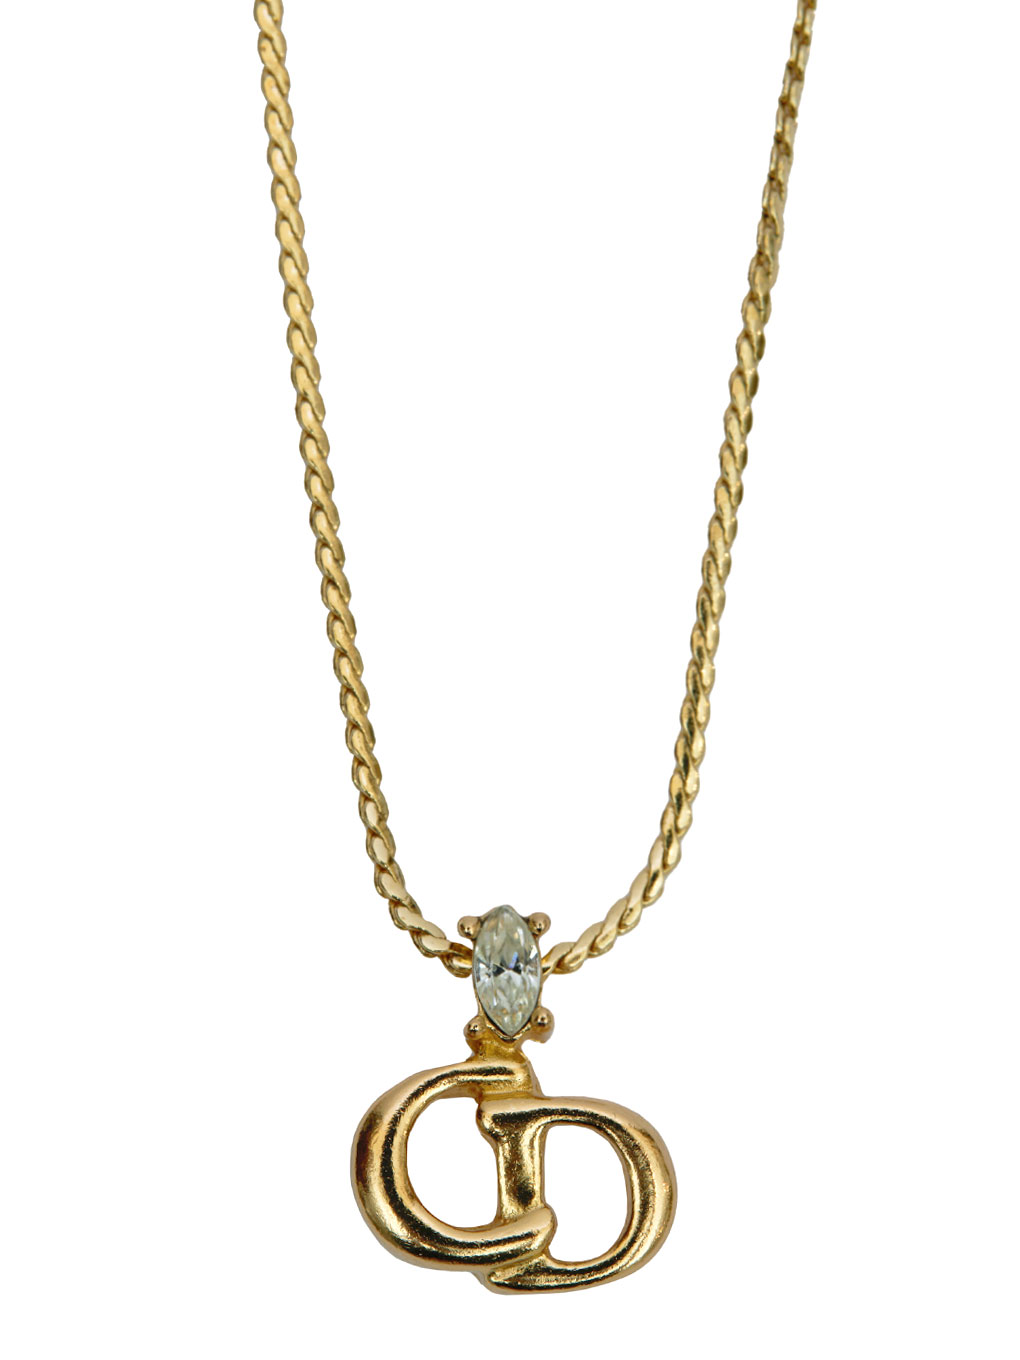 DIOR CD LOGO NECKLACE